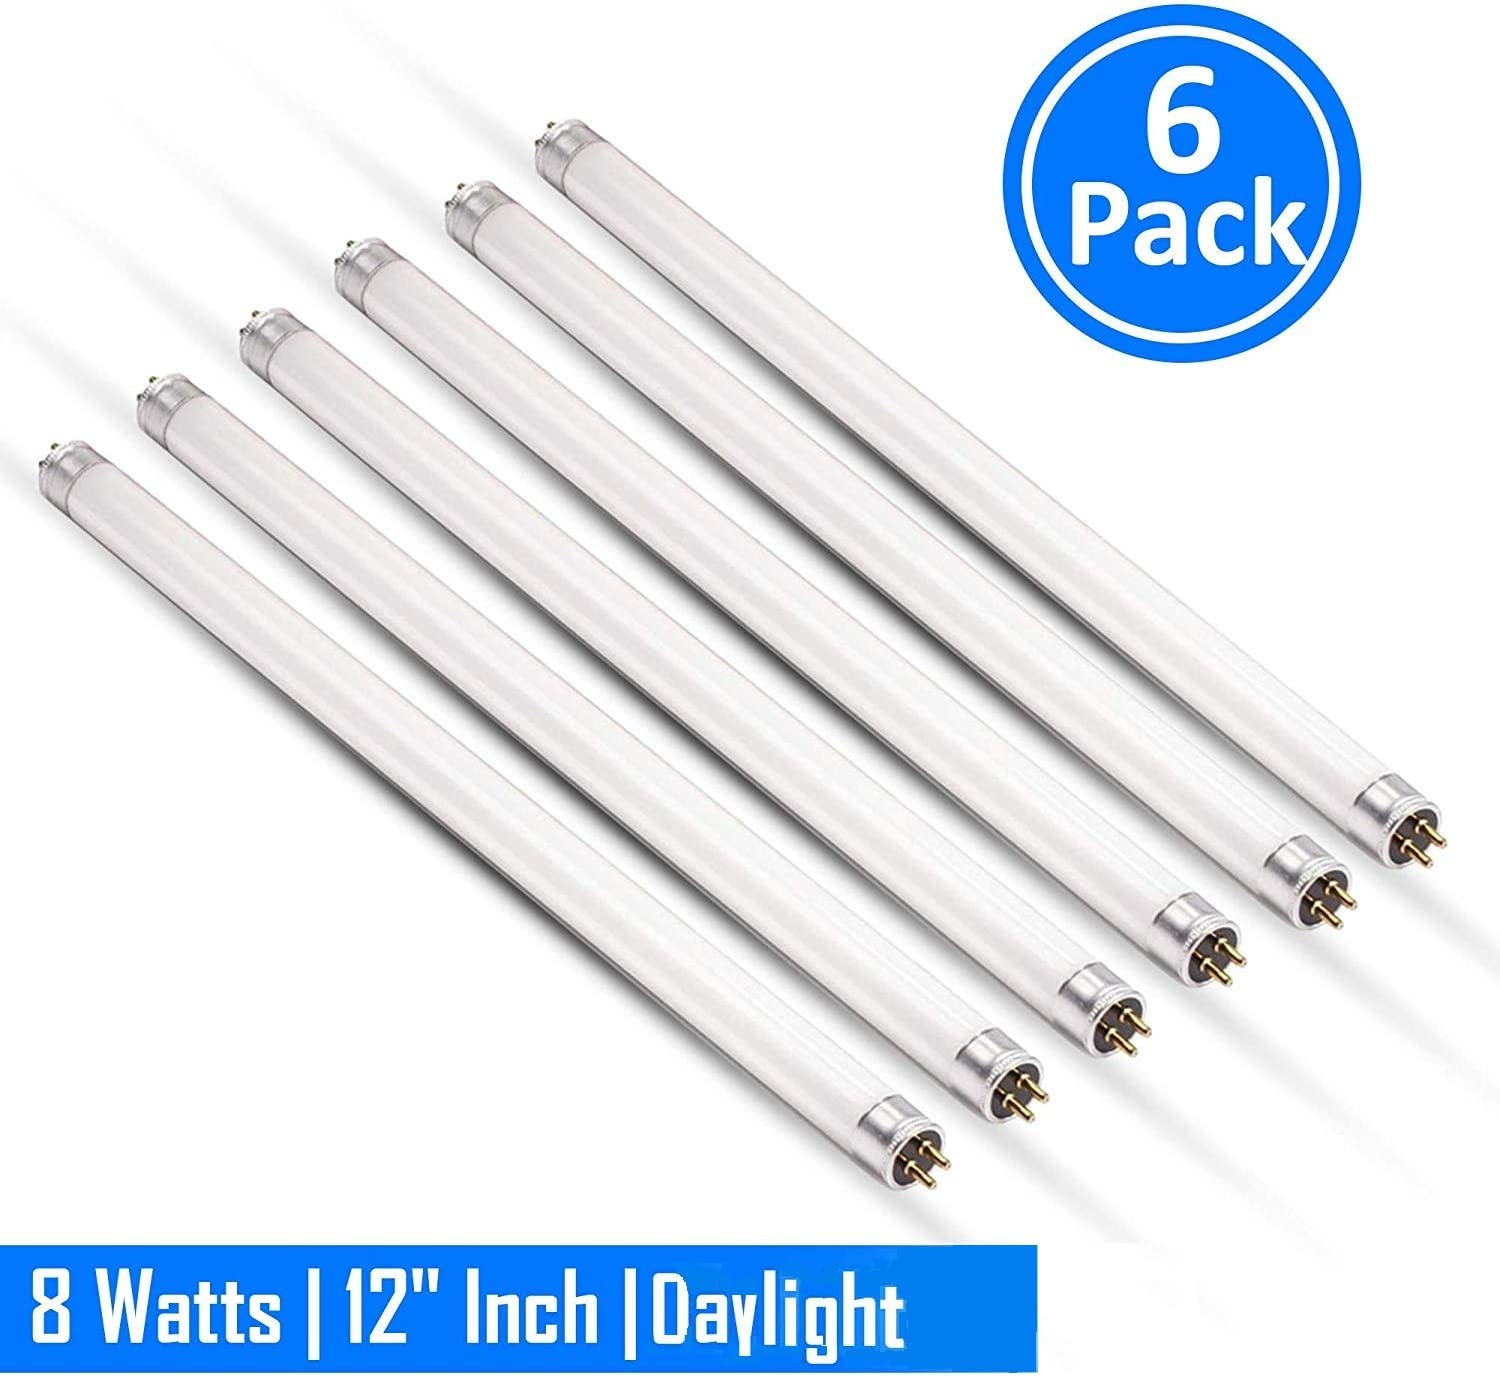 "F8T5/D 8 Watts 6500K Fluorescent Tube Bi Pin Light Bulbs Daylight 12"" Linear T5 380 Lumens 120 Volts -Under The Counter Professional Grade Fluorescent Lamp Pack of 6"